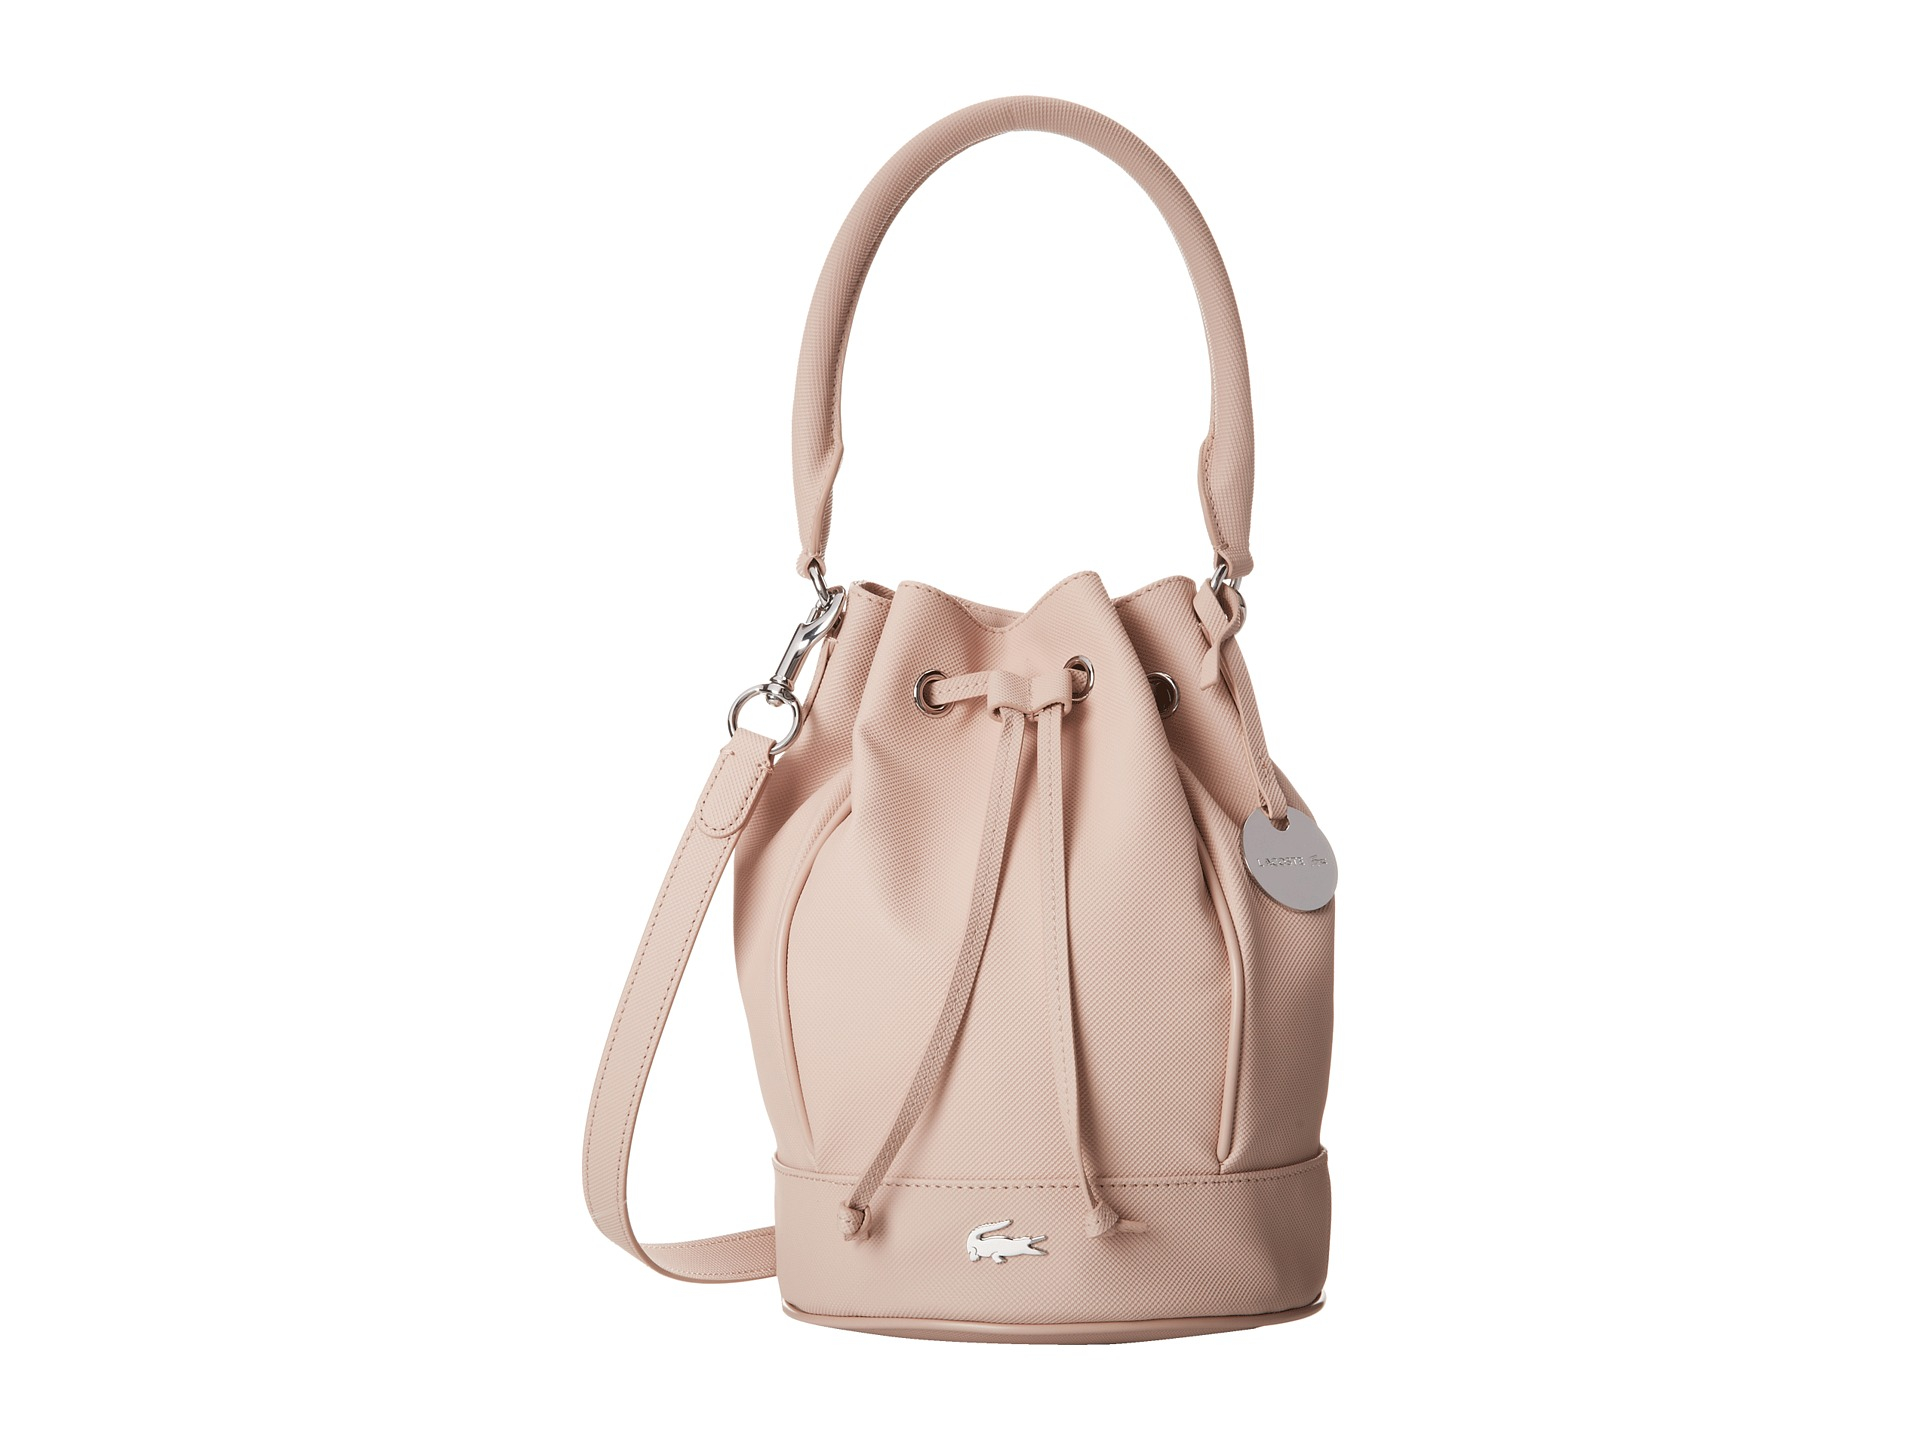 8867e1cb78 Lacoste Daily Classic Bucket Bag in Pink - Lyst